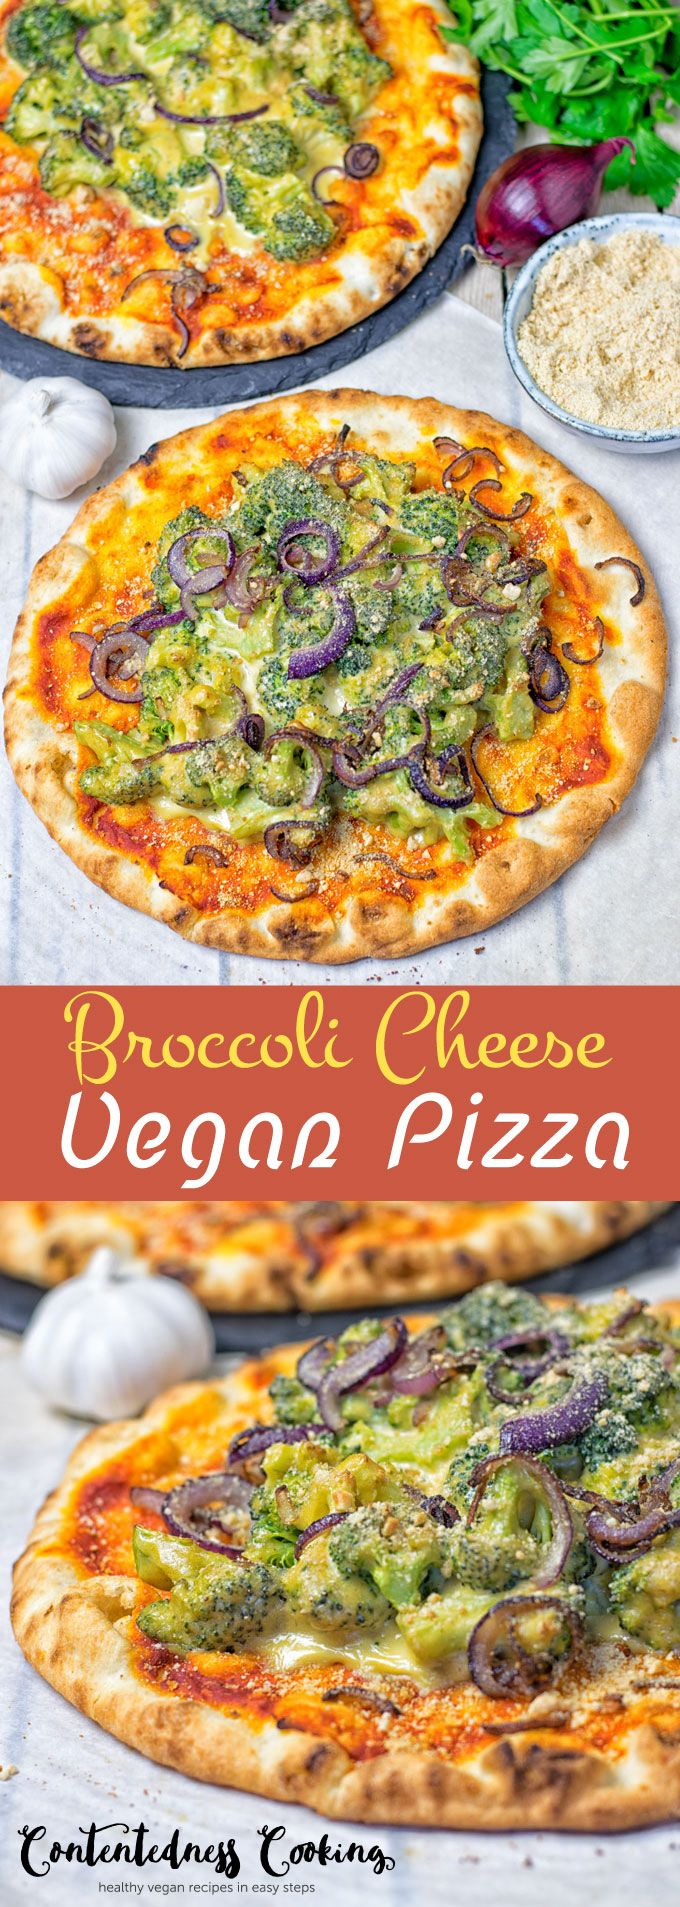 The best Broccoli Cheese Vegan Pizza is here. It's made from just 6 ingredients and in 2 easy steps. A satisfying, filling, and comforting plant based meal.